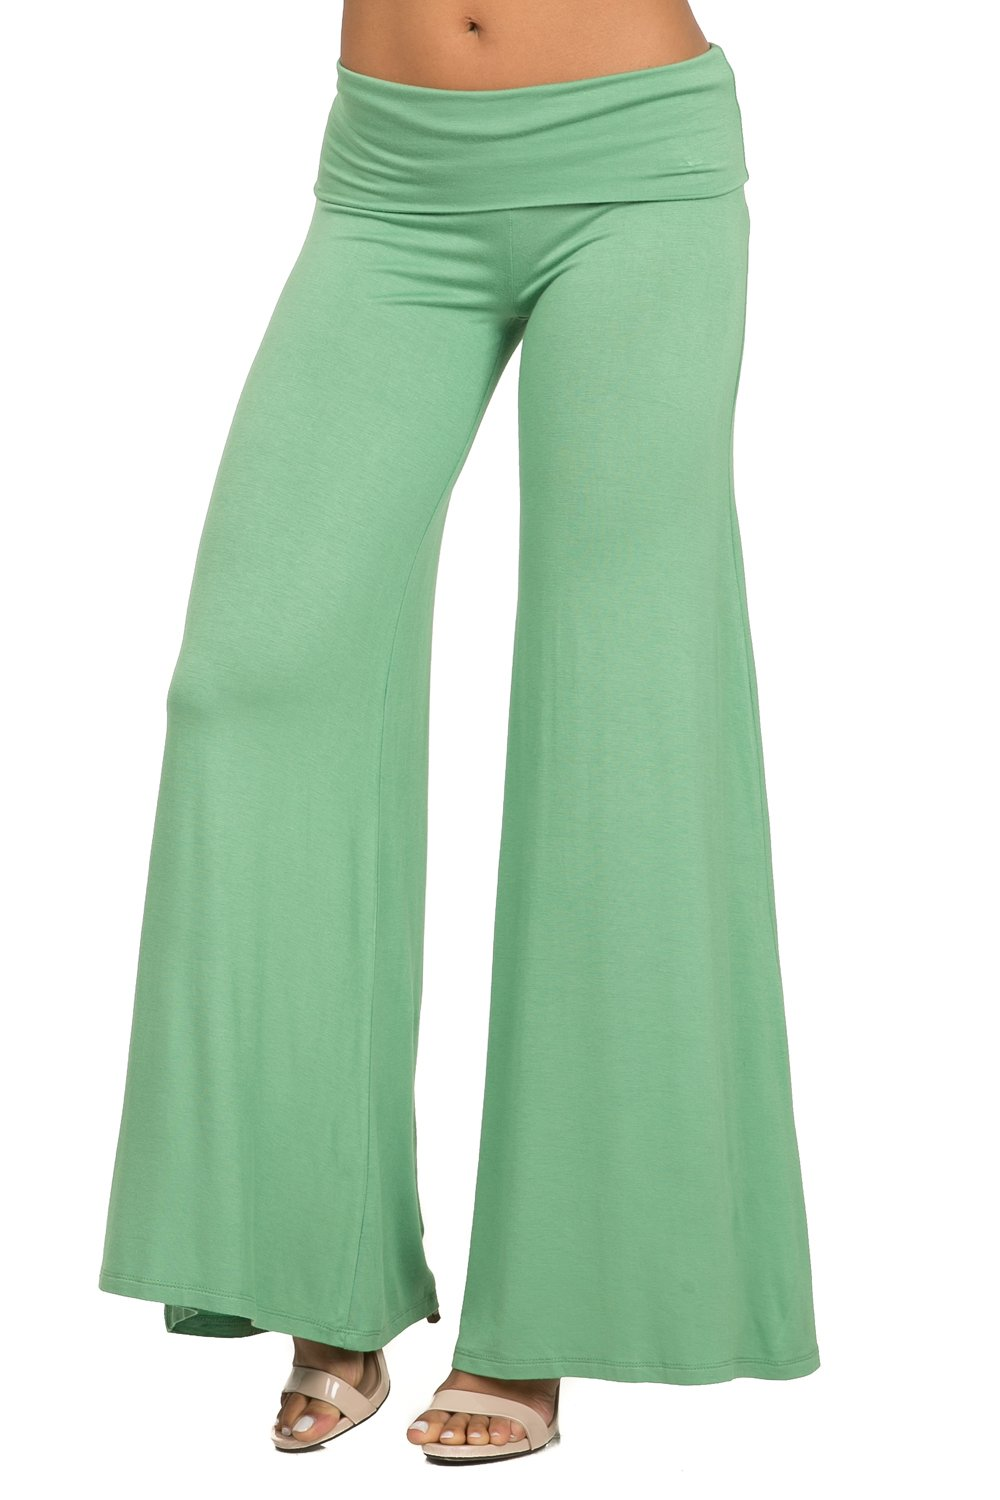 coul J WP502 Women's Comfy Chic Fold Over Waist Flare Wide Leg Palazzo Lounge Pants - Sage/Size: Large